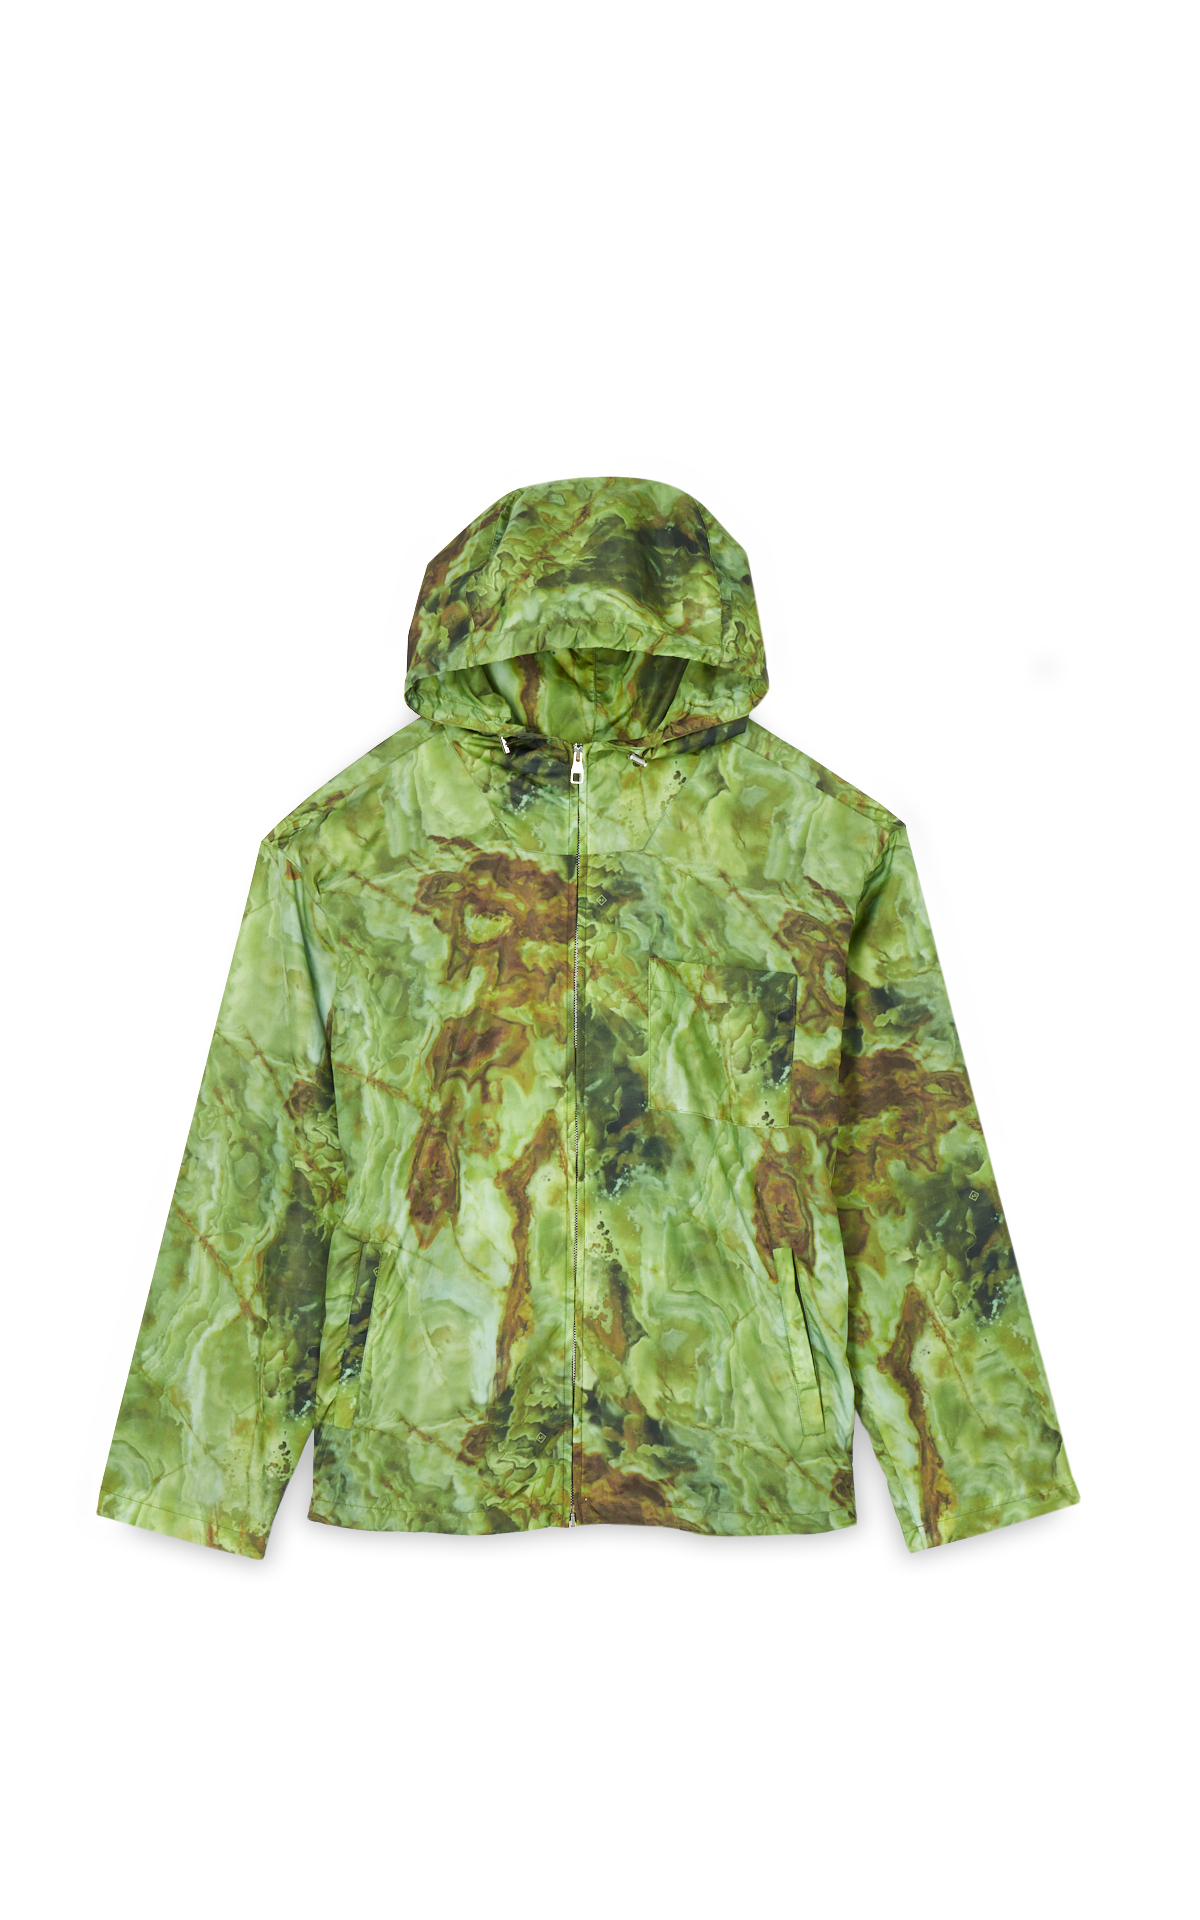 La Vallée Village Dunhill Green windcheater